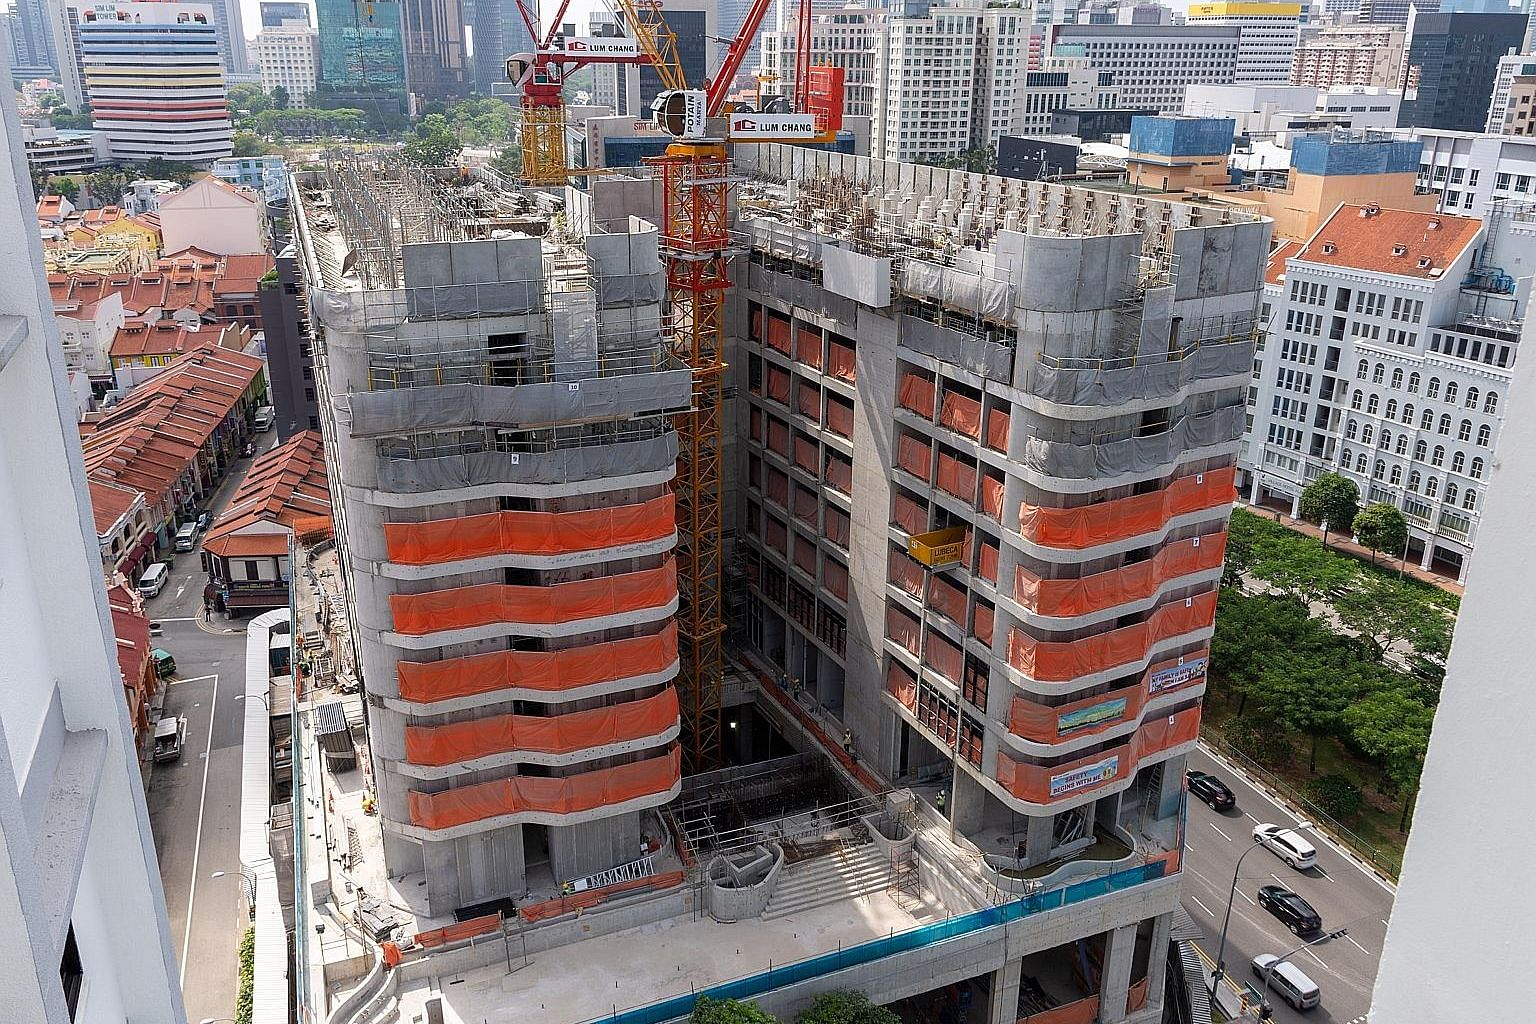 A view of the upcoming Tekka Place, which will be completed by the end of the year.The complex comprises a 10-storey main block and a seven-storey annex. One major tenant will be the rustic-themed XinTekka food hall, which will feature around26 stall